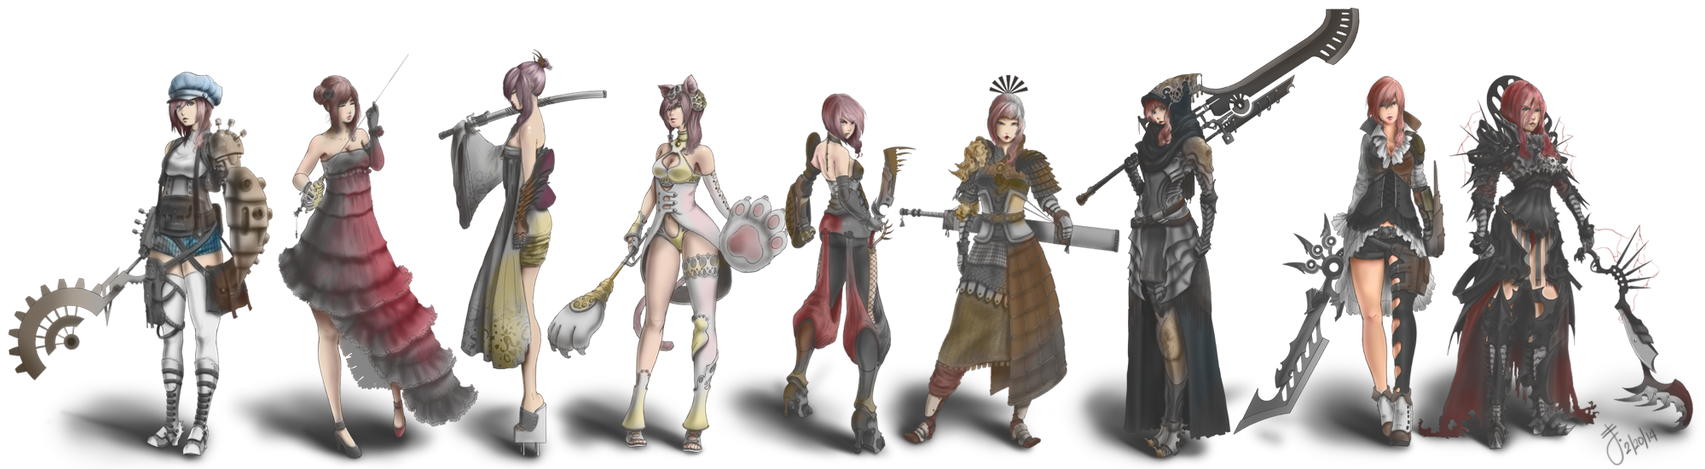 Final fantasy xiii lightning returns costumes - photo#25